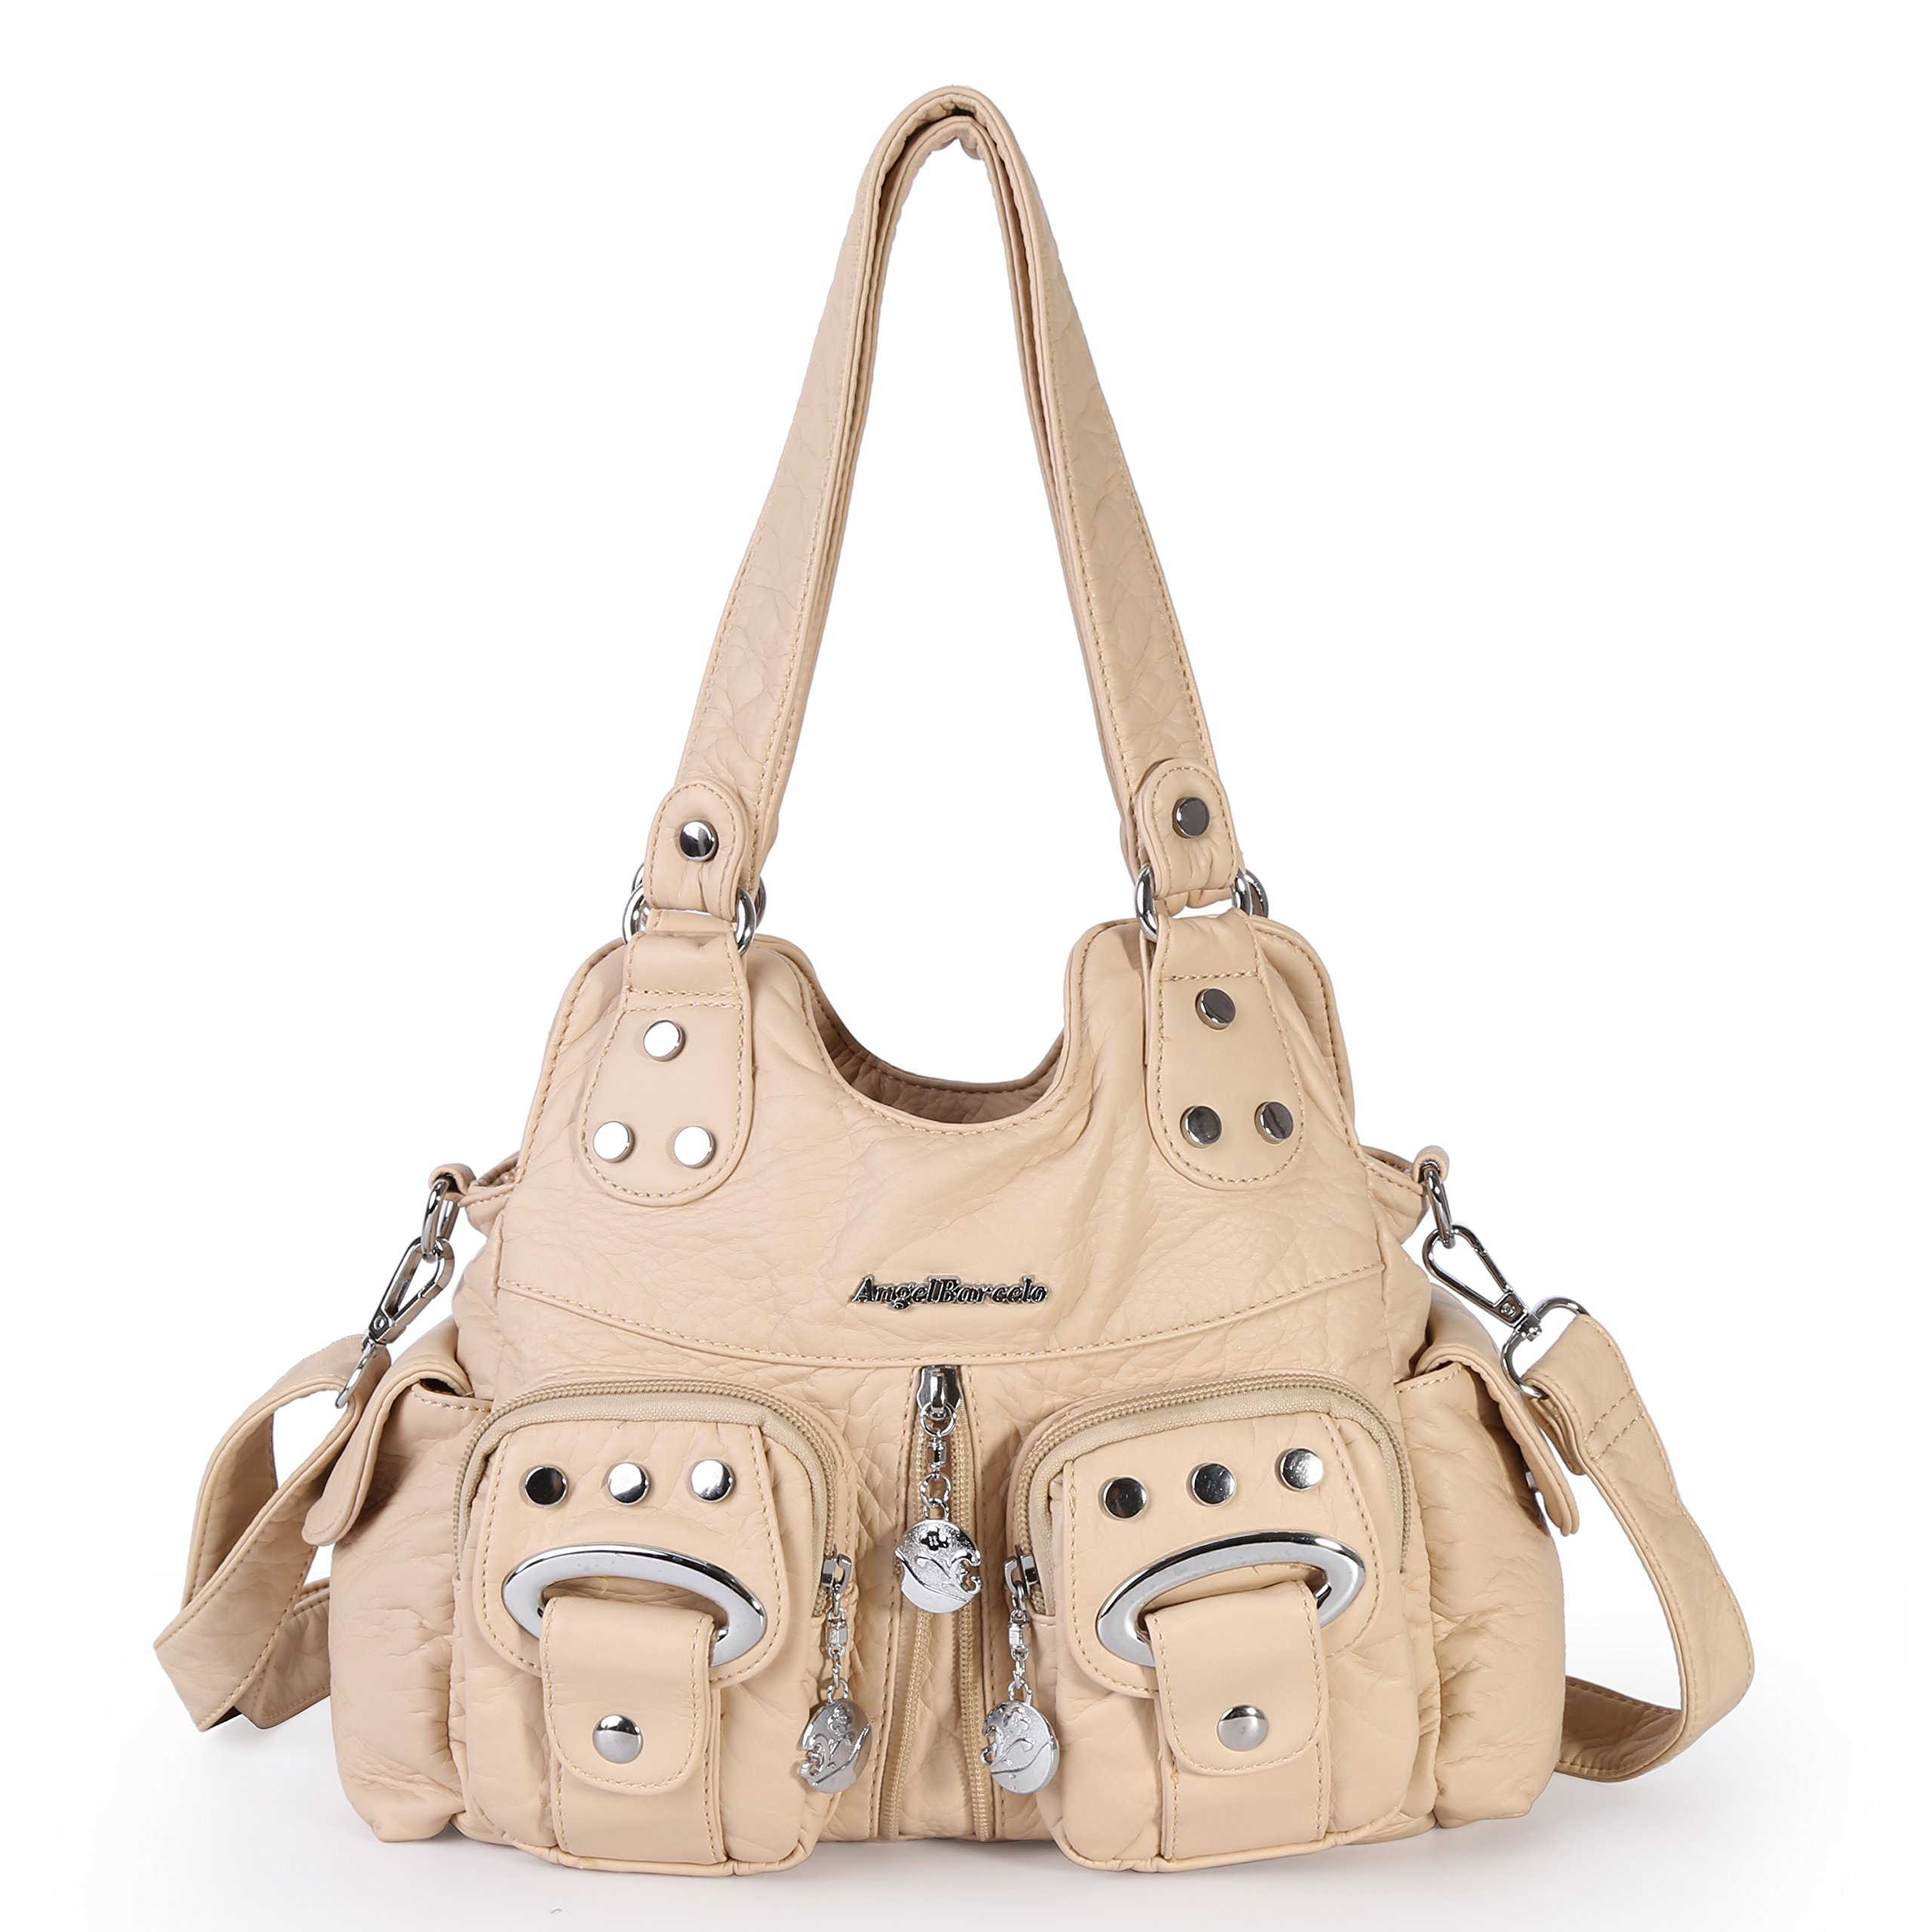 Angel Barcelo 3 Top Zippers Multi Pockets Purses and Handbags Leather Shoulder Bags Backpack Women (Beige)